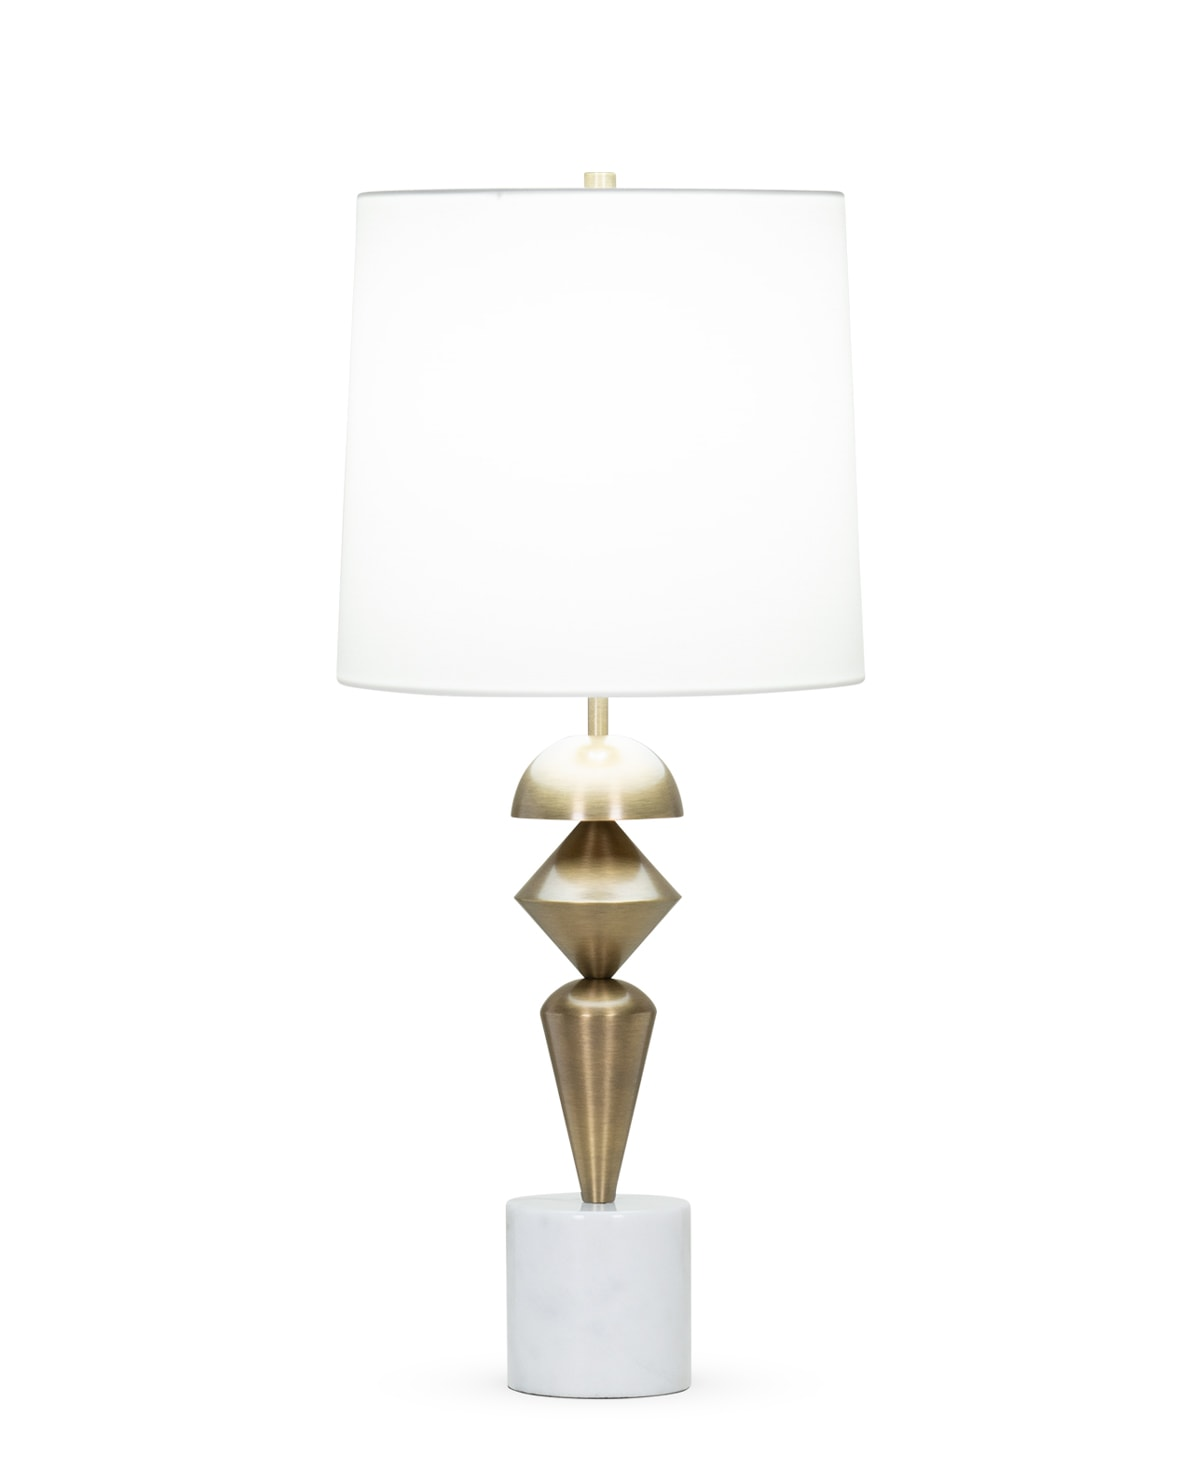 FlowDecor Sable Table Lamp in white marble and metal with antique brass finish and off-white cotton tapered drum shade (# 4405)